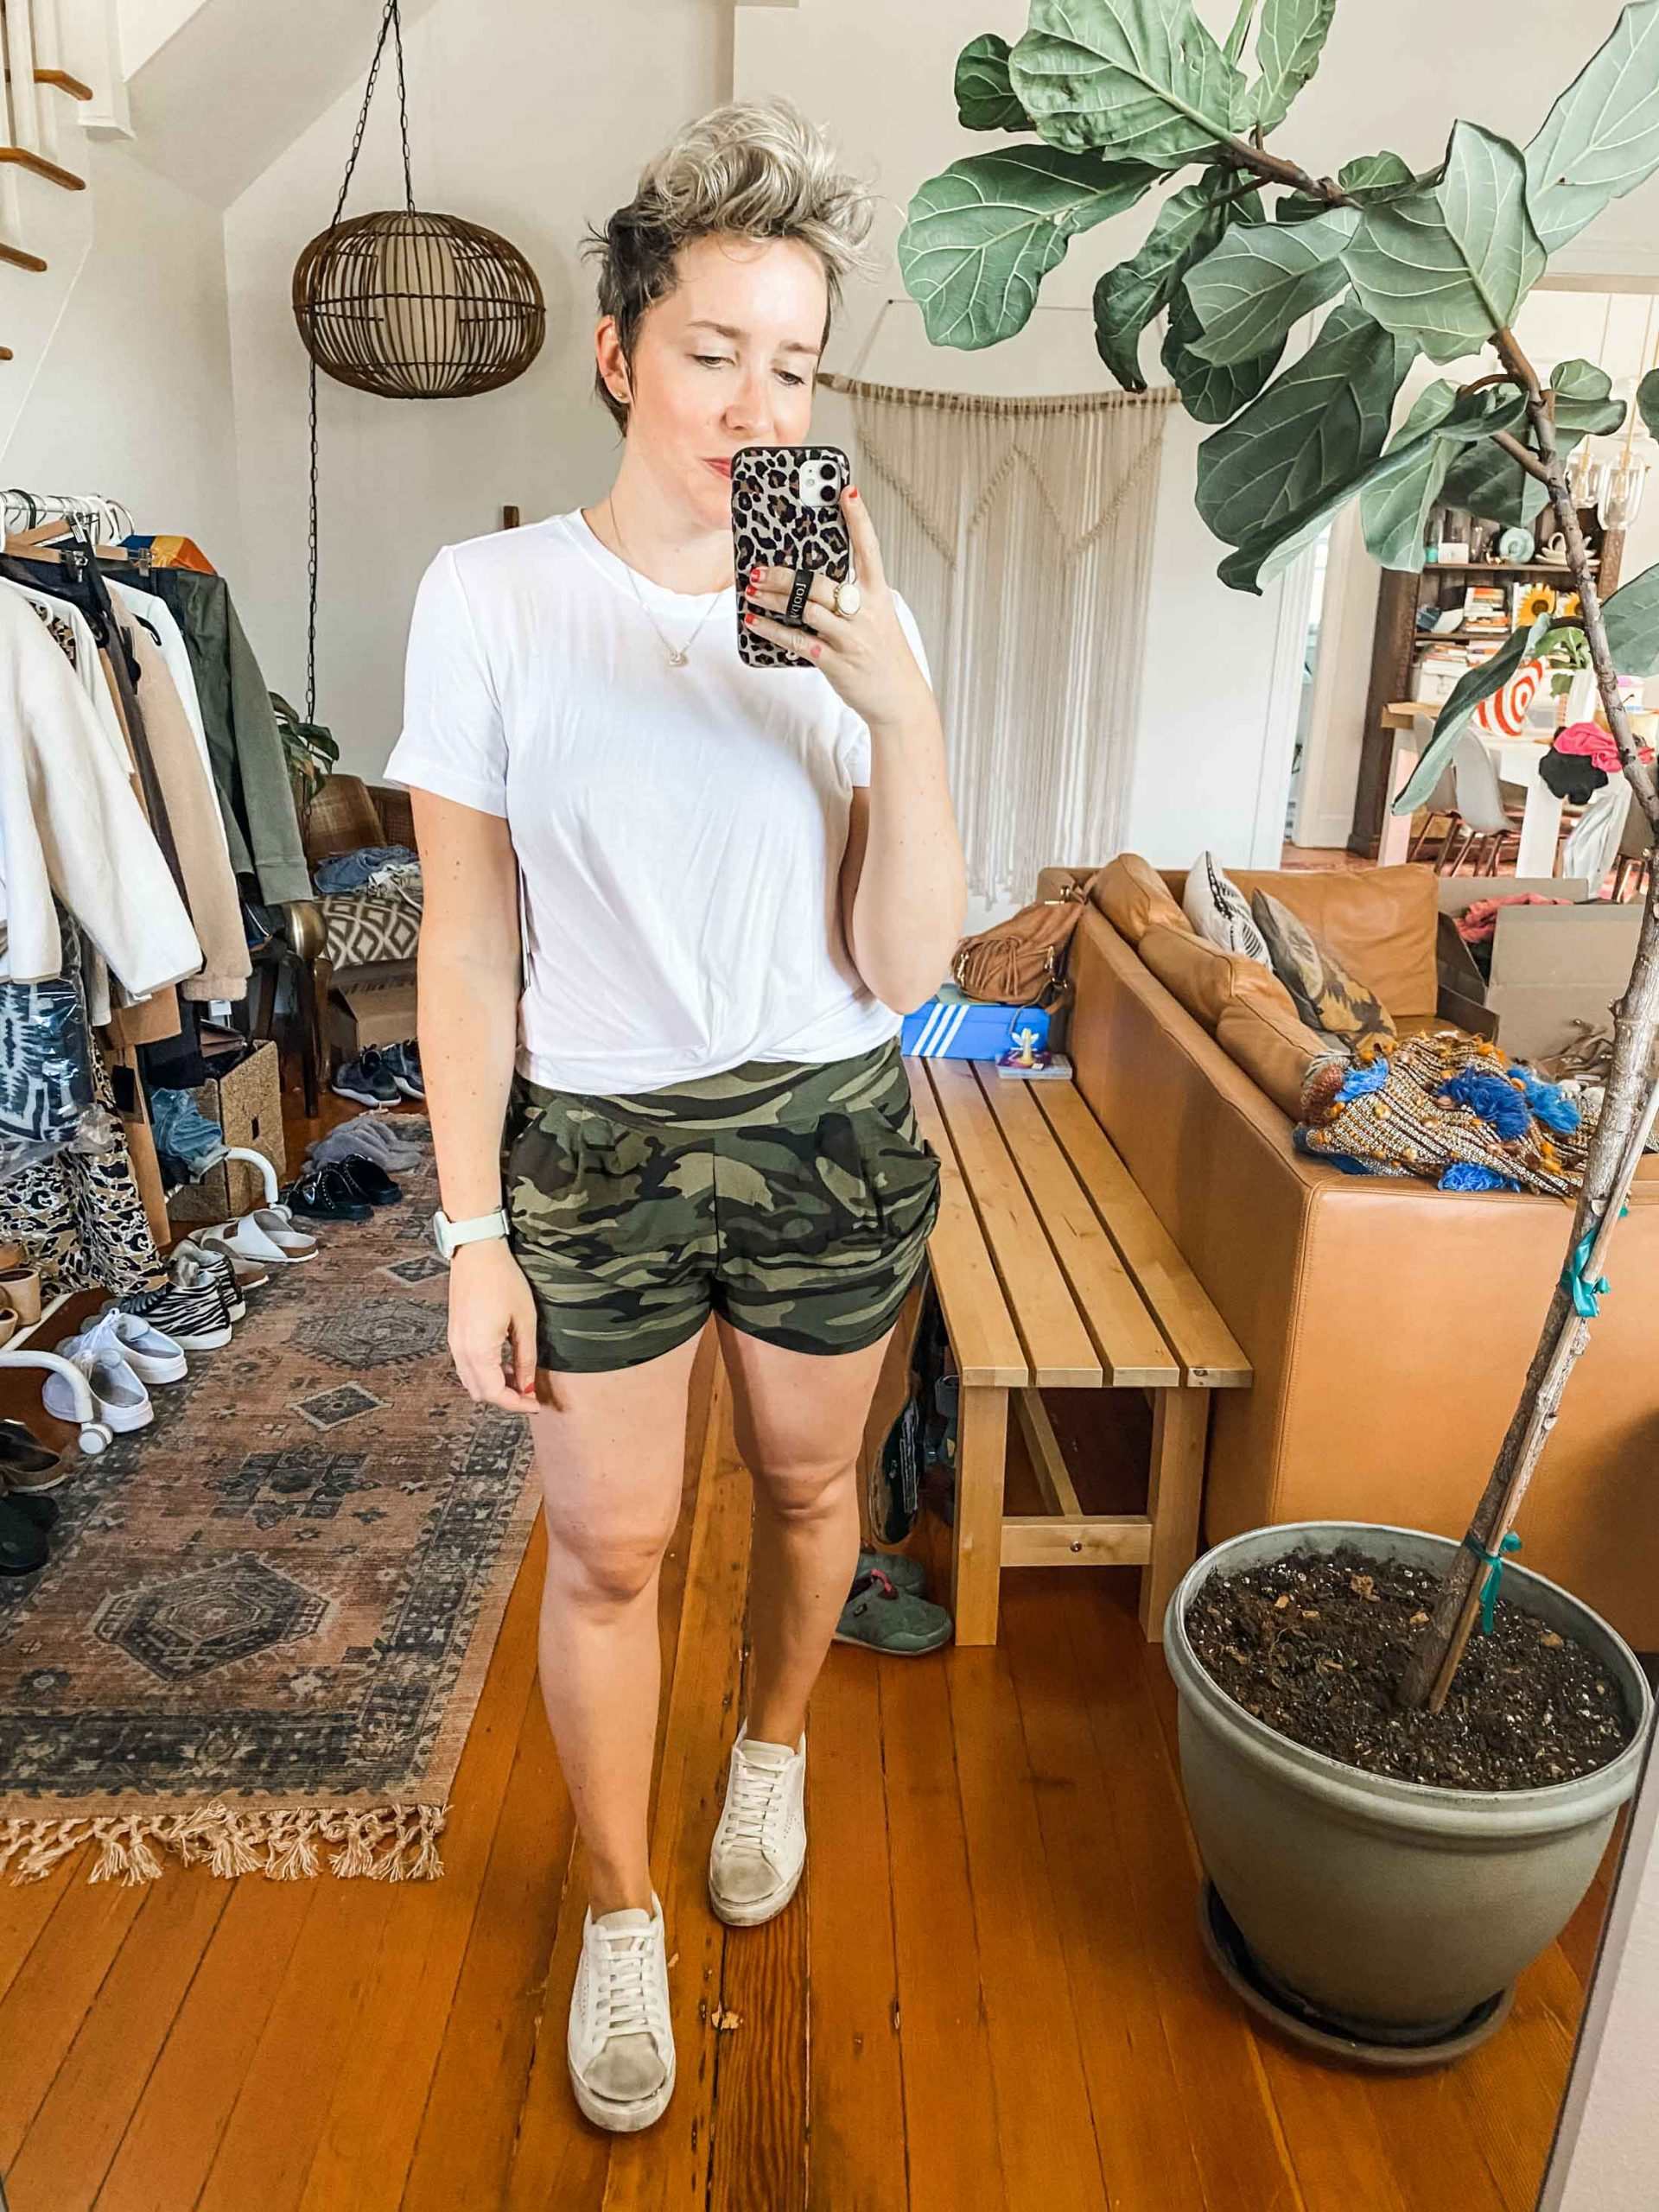 Lounge shorts? Workout shorts? It's as if bike shorts & paperbag waist pants had an athleisure baby...Let's style these comfy Amazon shorts....